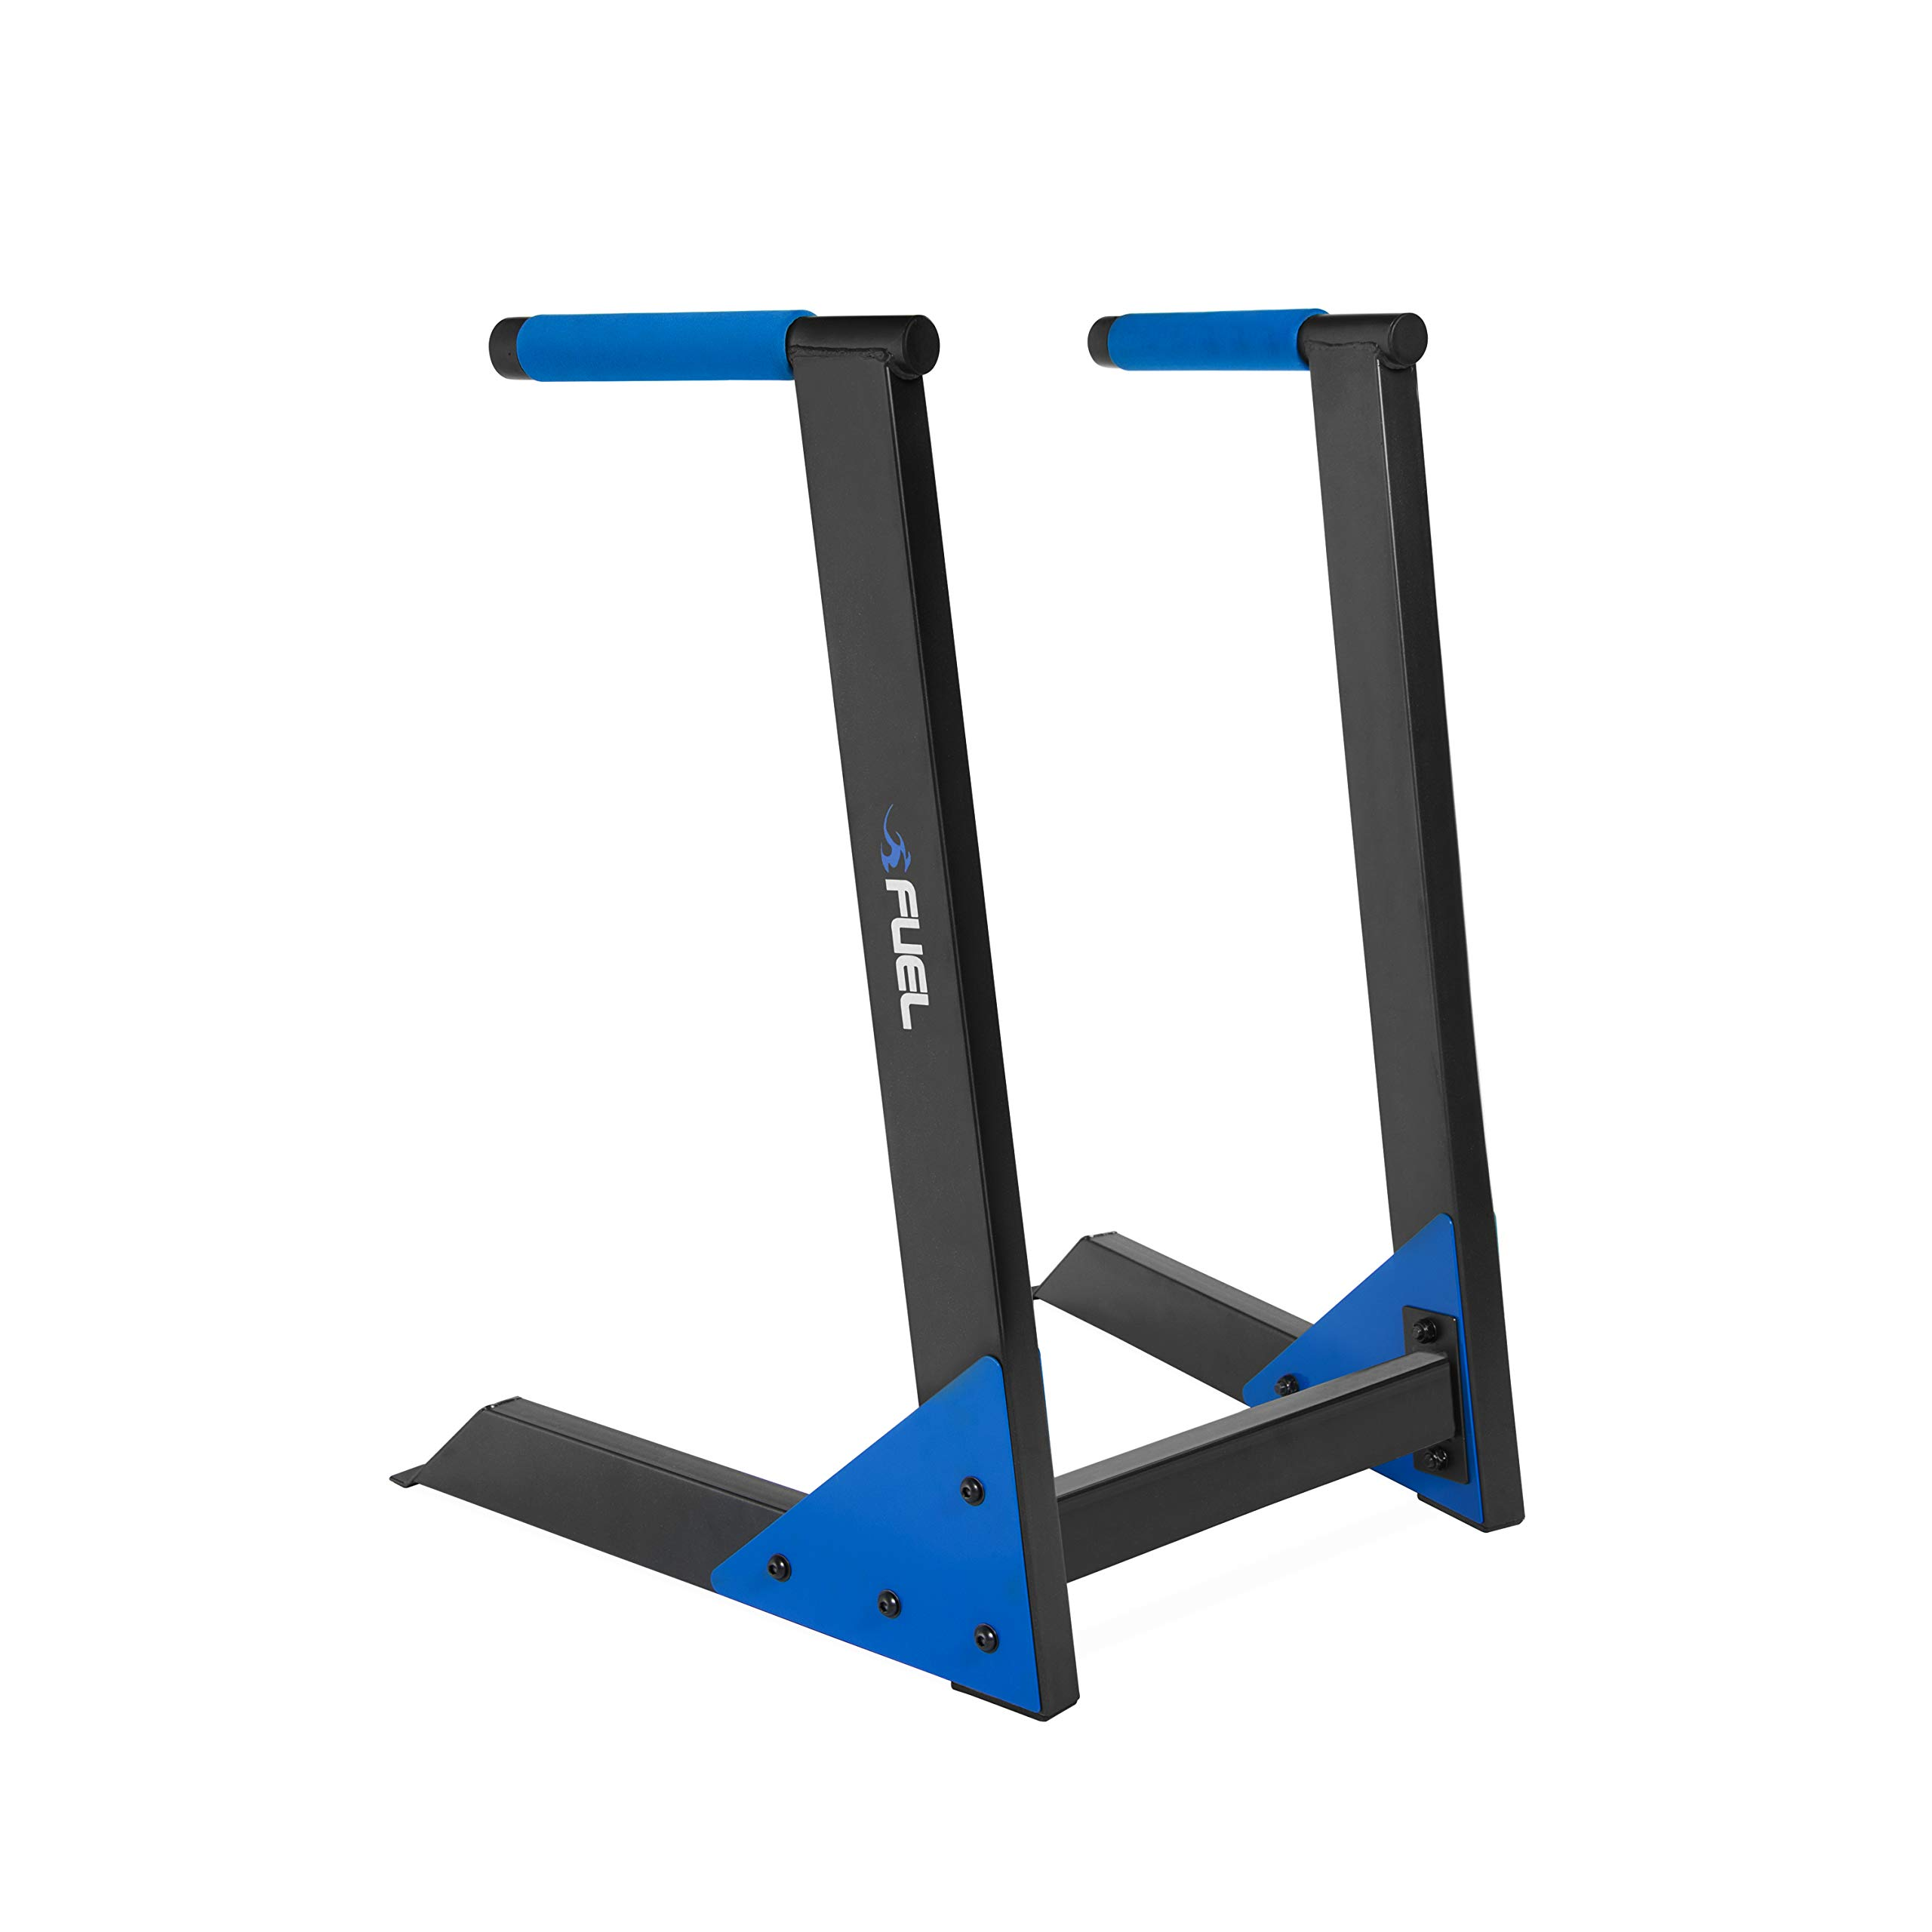 Fuel Pureformance Deluxe Bodyweight Training Dip Station by Fuel Pureformance (Image #2)